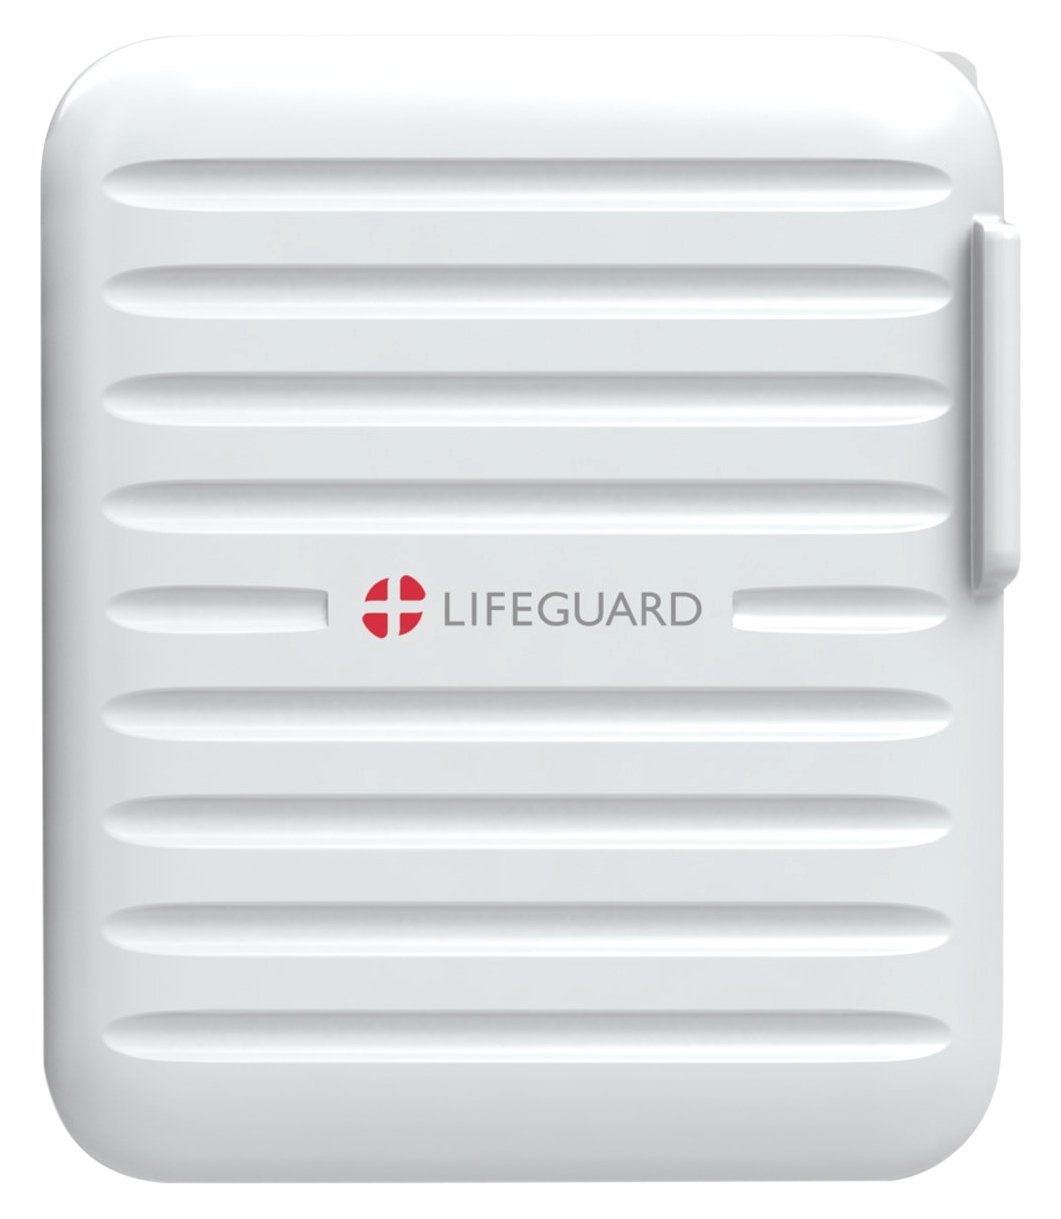 plusLIFEGUARD Dual USB Wall Charger 3.1A with Plus IQ Technology, White